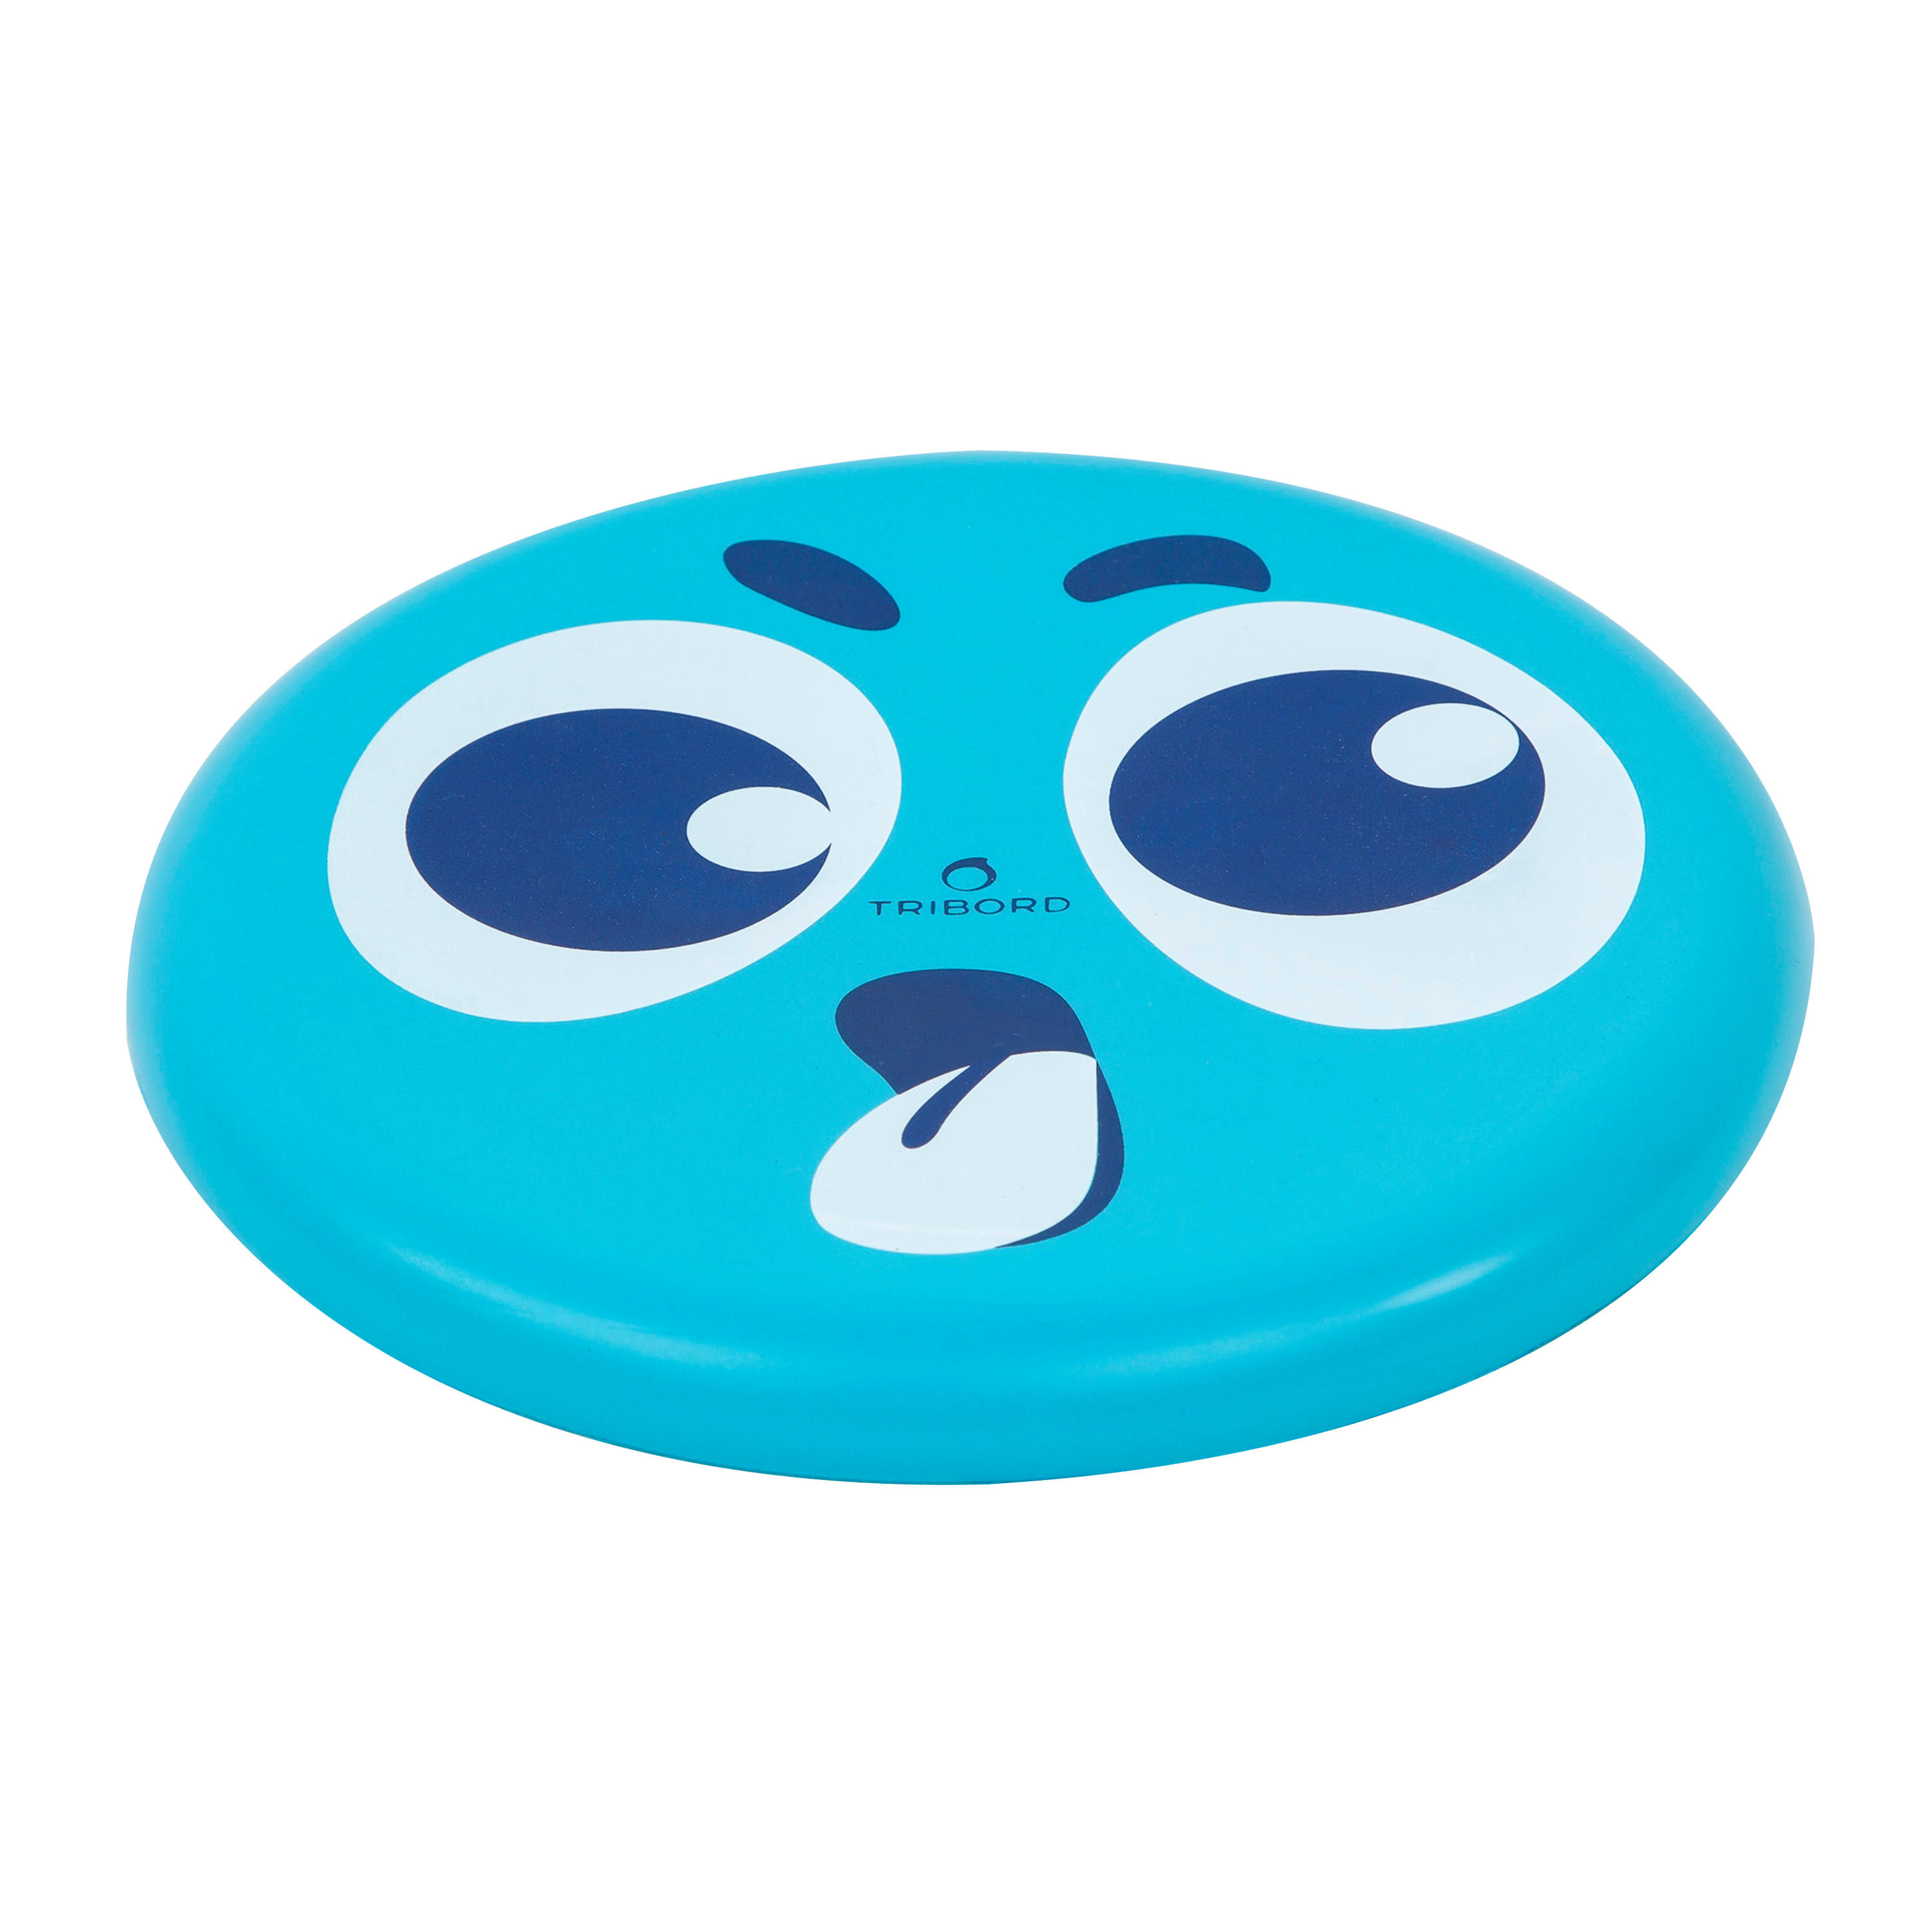 DSoft Frisbee...